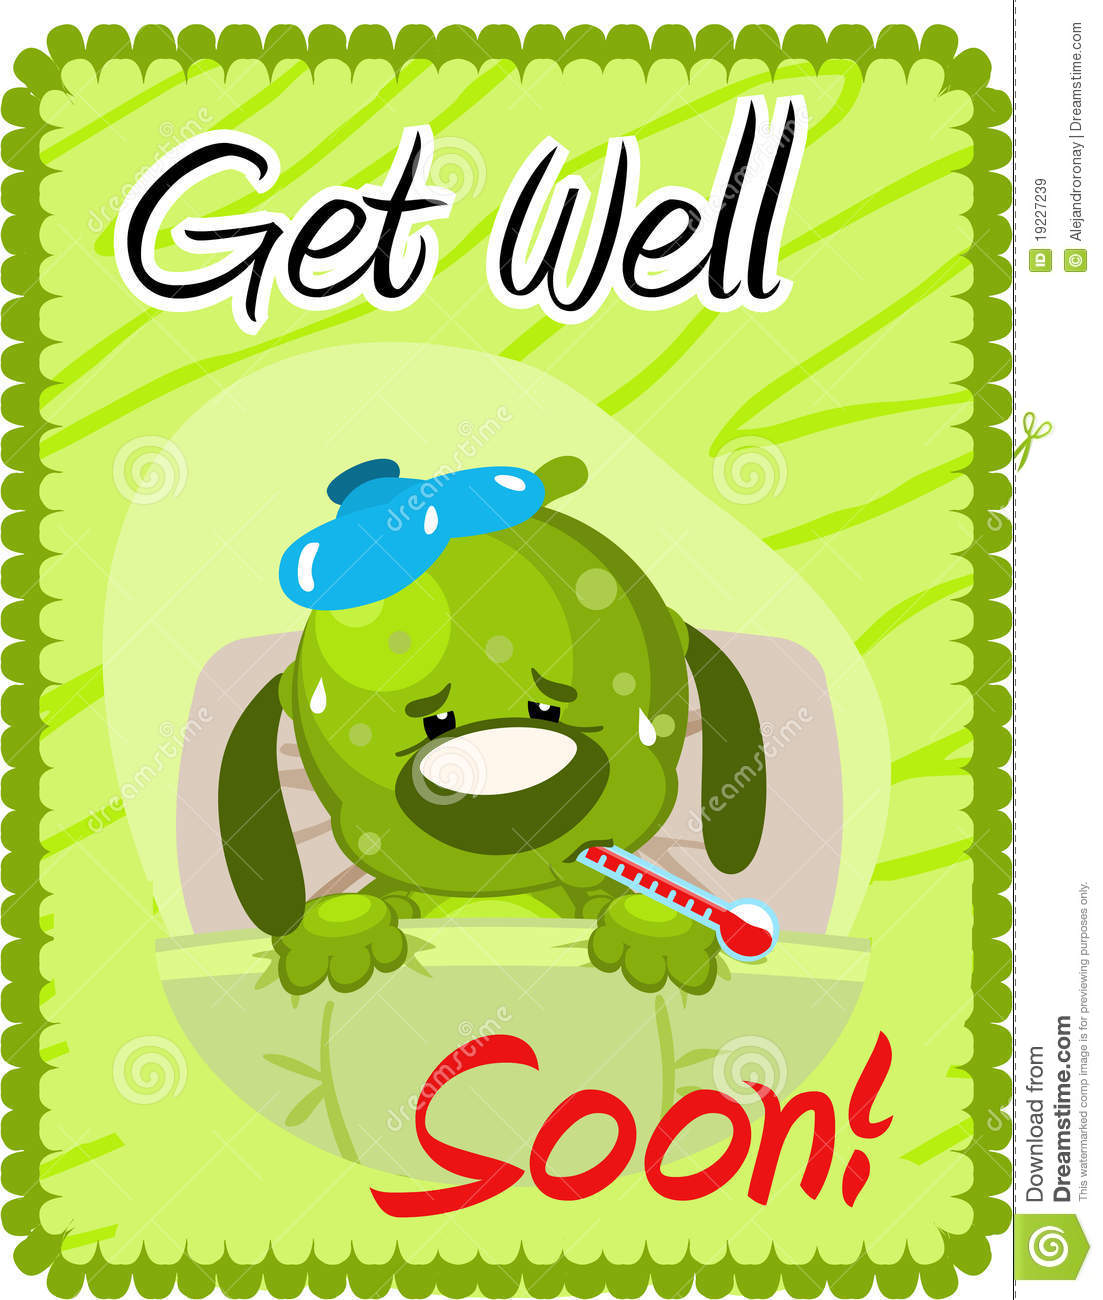 Get Well Messages For Your Dog